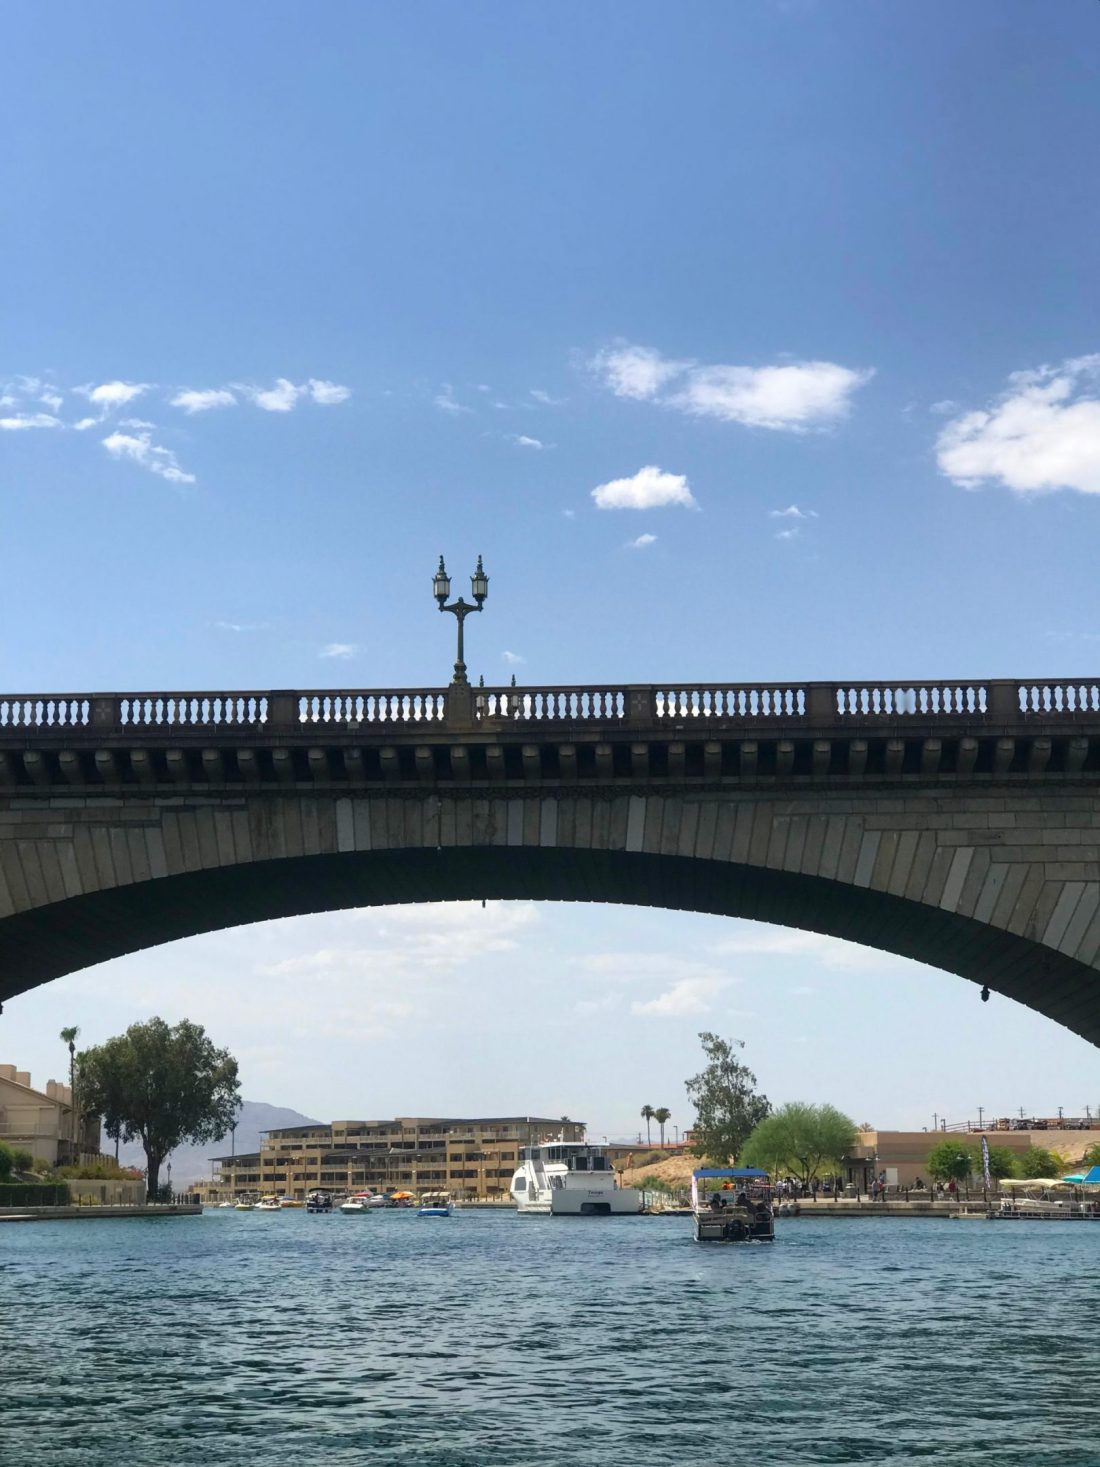 The London Bridge over Lake Havasu